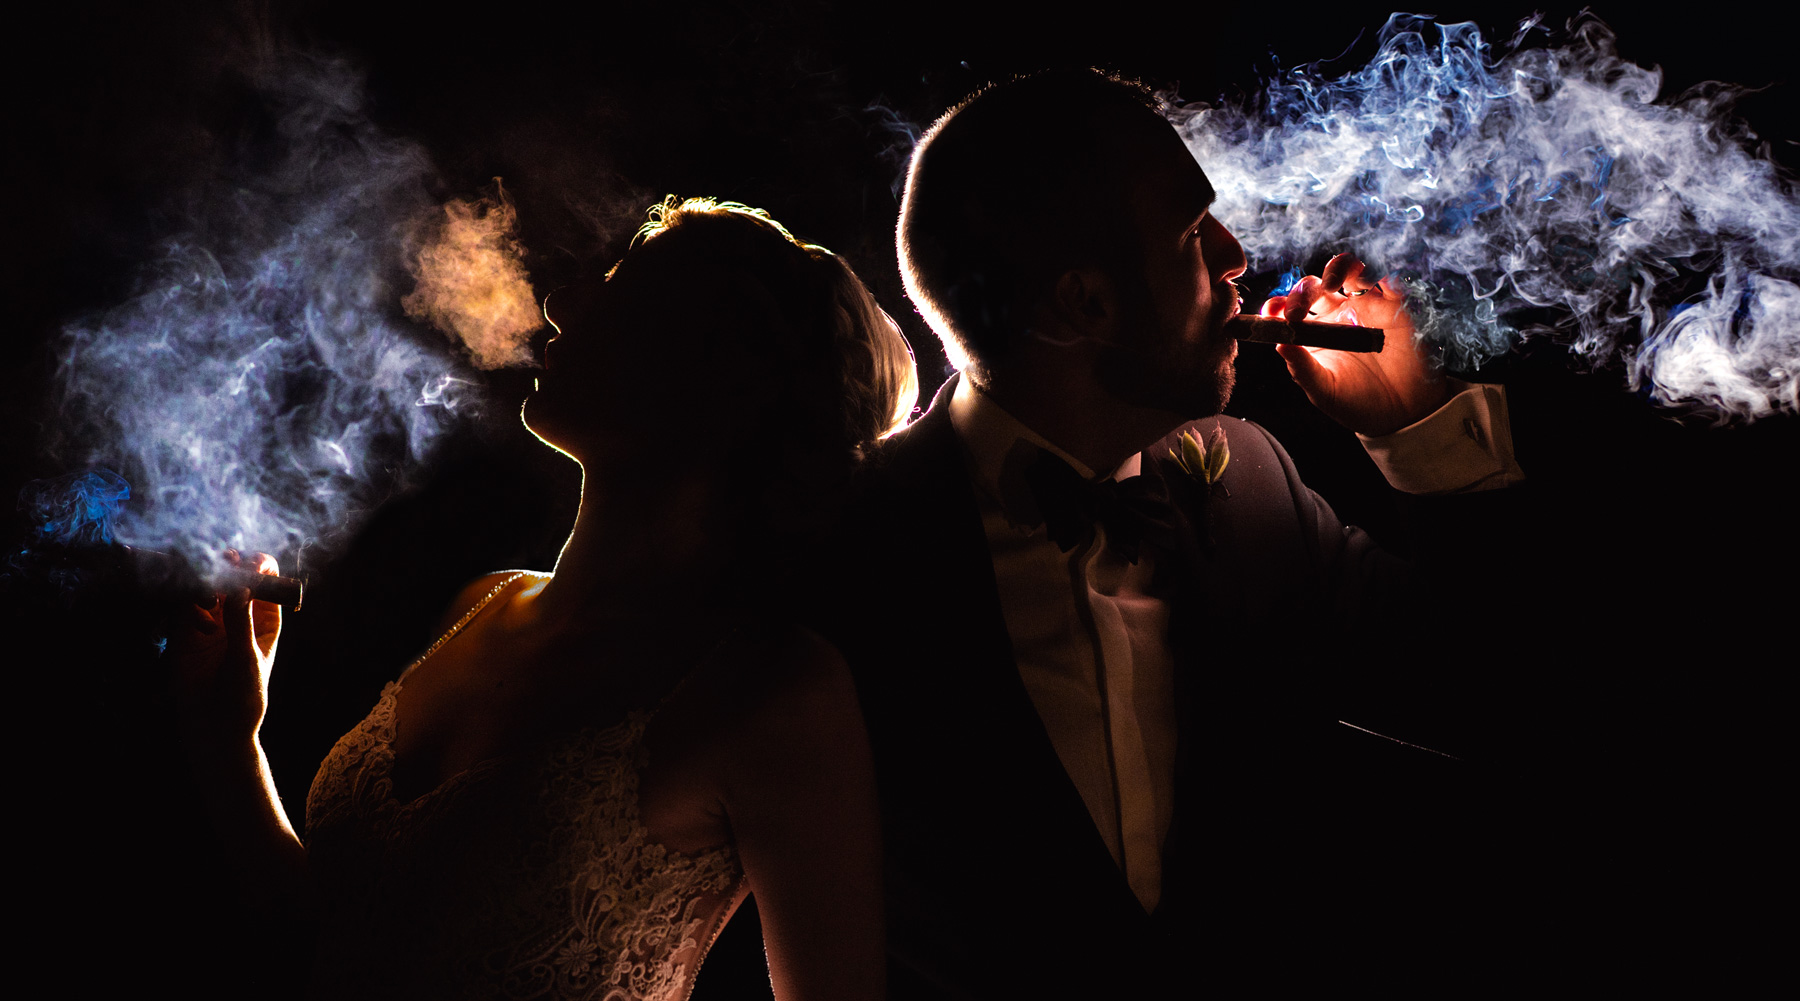 Bride and groom smoking cigar at wedding with off camera flash magnet modification